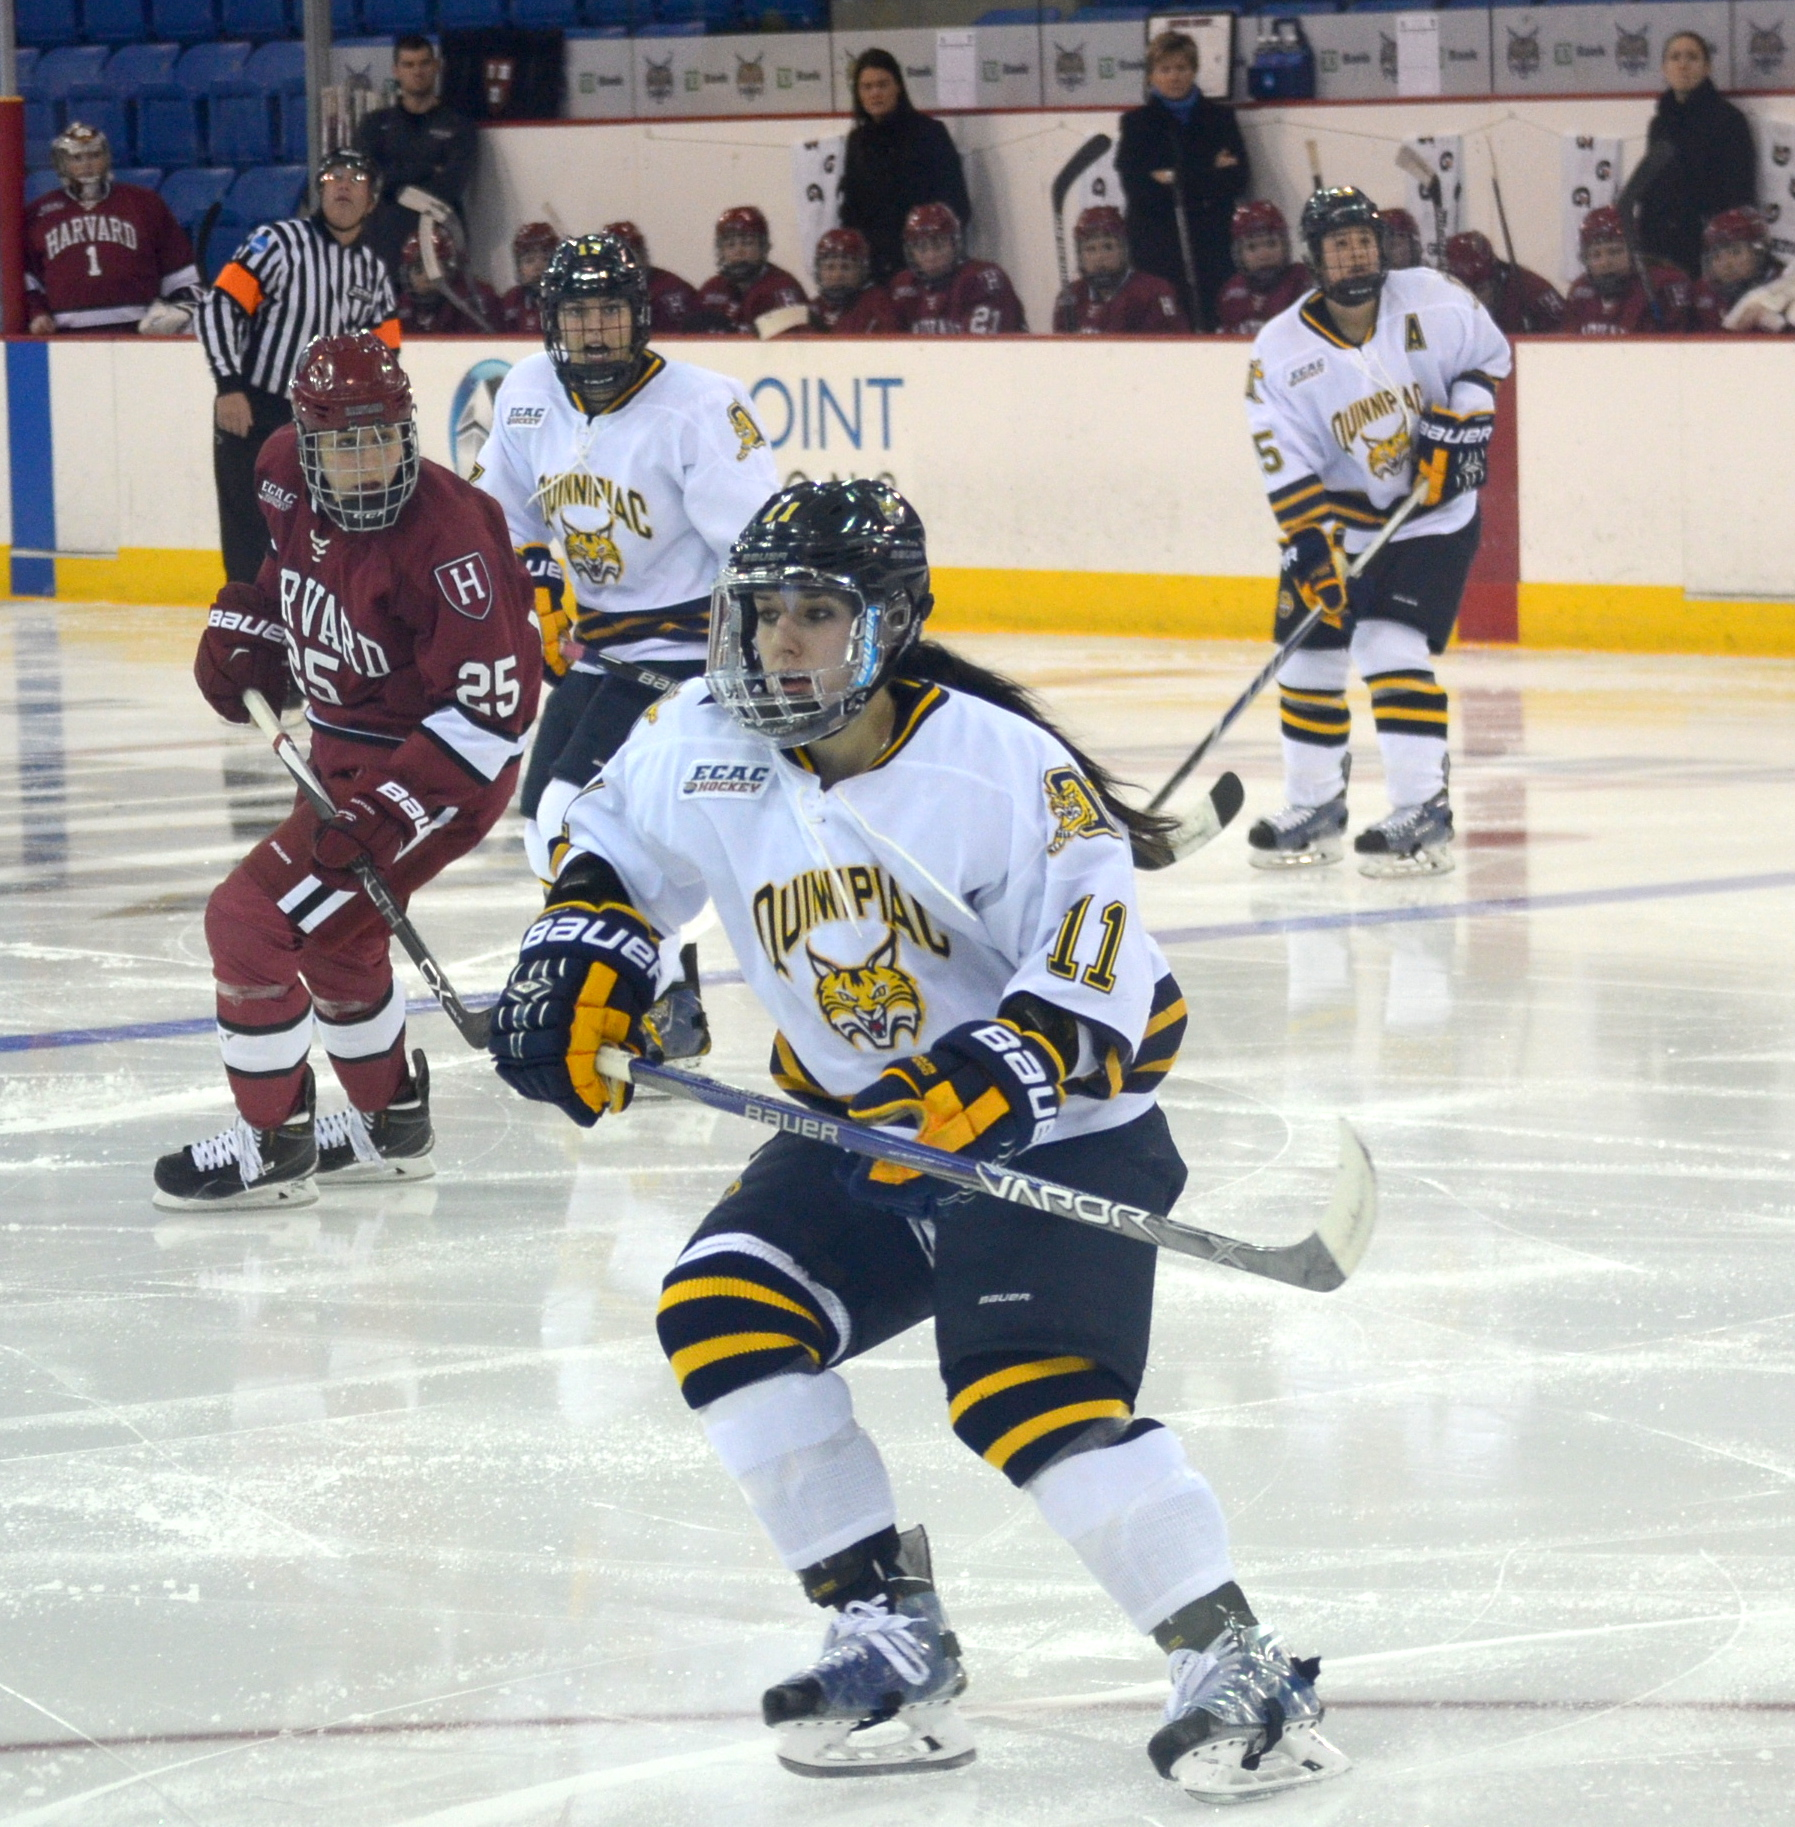 Jordan Novack|Quinnipiac Chronicle Melissa Samoskevich forechecks the Harvard defense 12/5/15